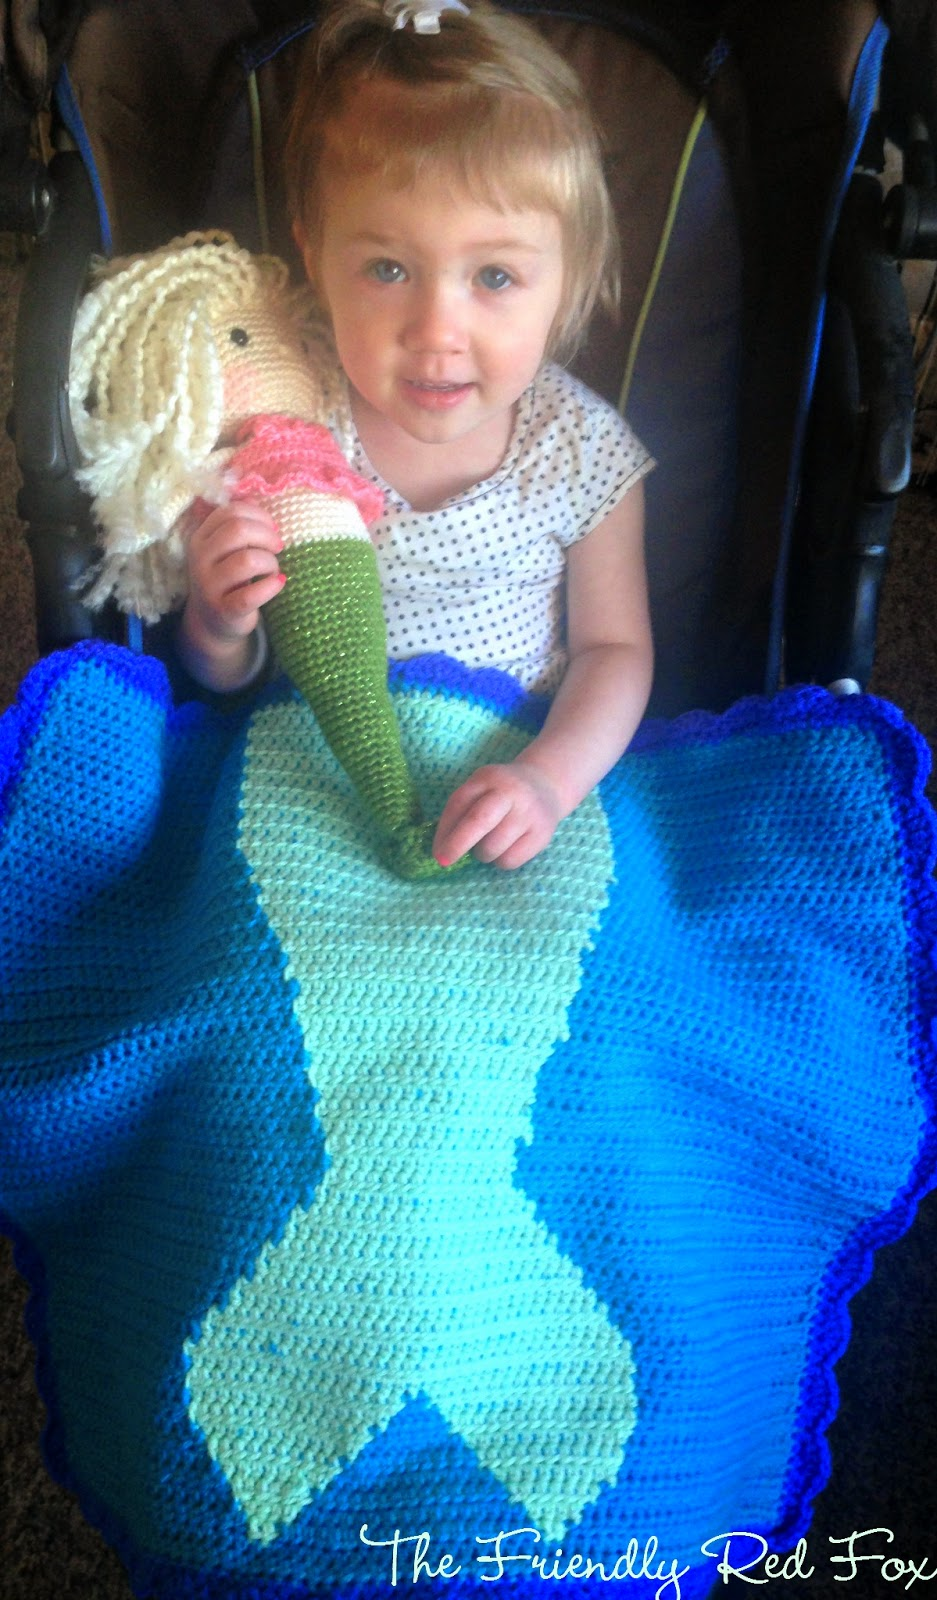 Crochet Free Pattern Mermaid Tail : Free Crochet Mermaid Tail Blanket Pattern - The Friendly ...